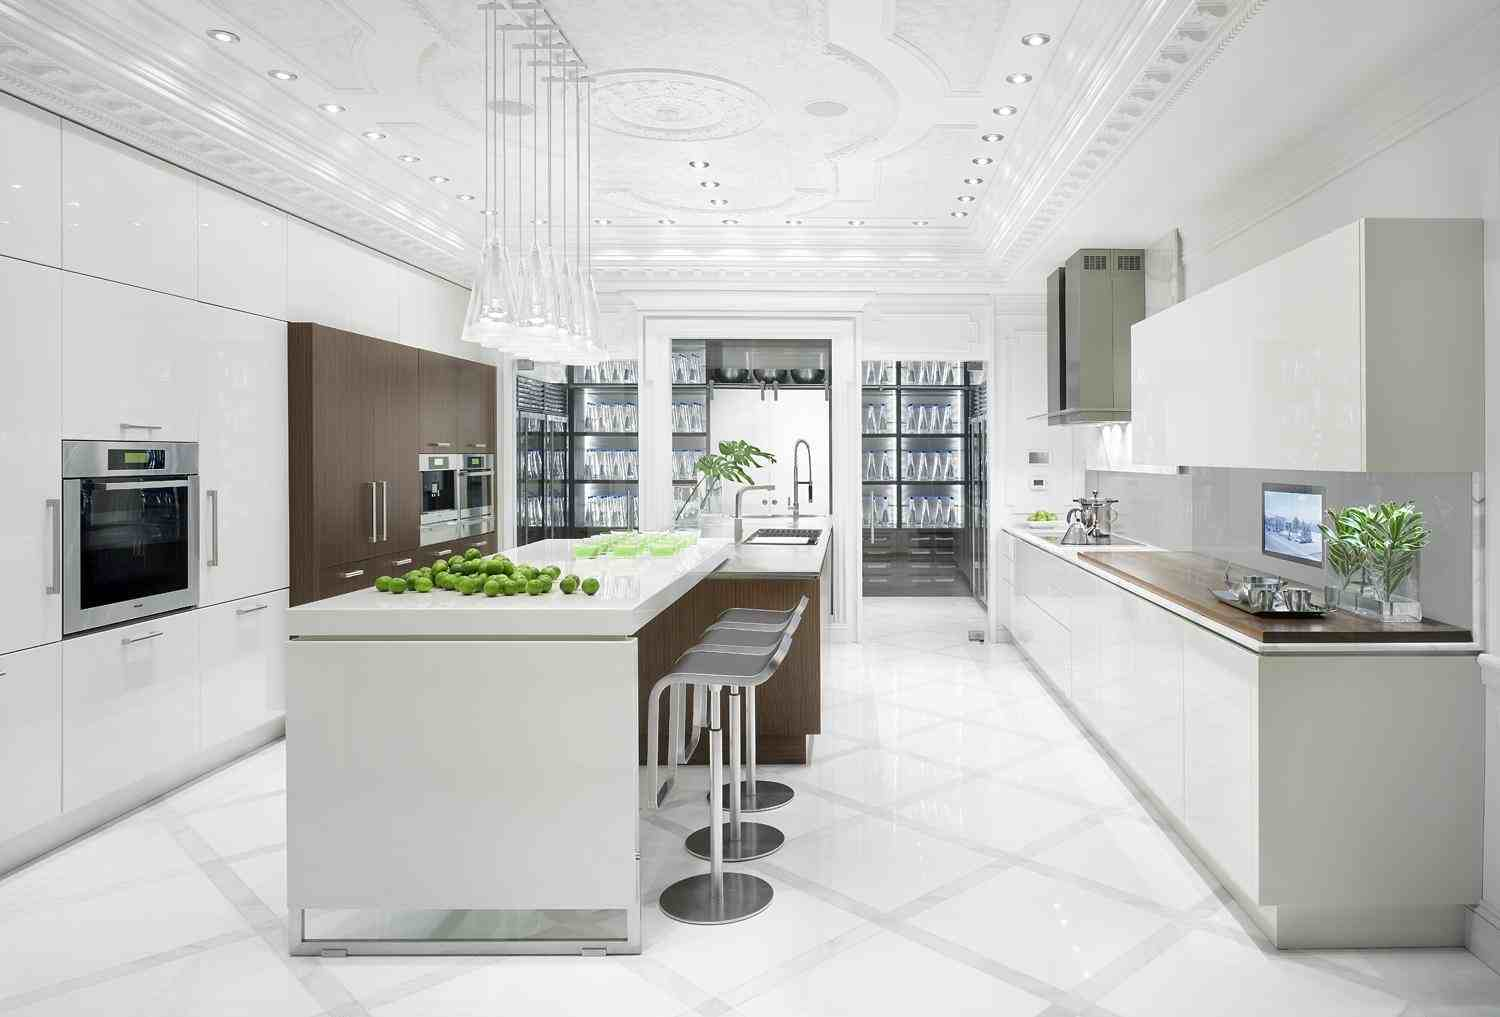 Shades of white kitchen : Shades2Bof2Bwhite2Bkitchen2B1 from inspirationhomedecor.blogspot.com size 1500 x 1017 jpeg 63kB